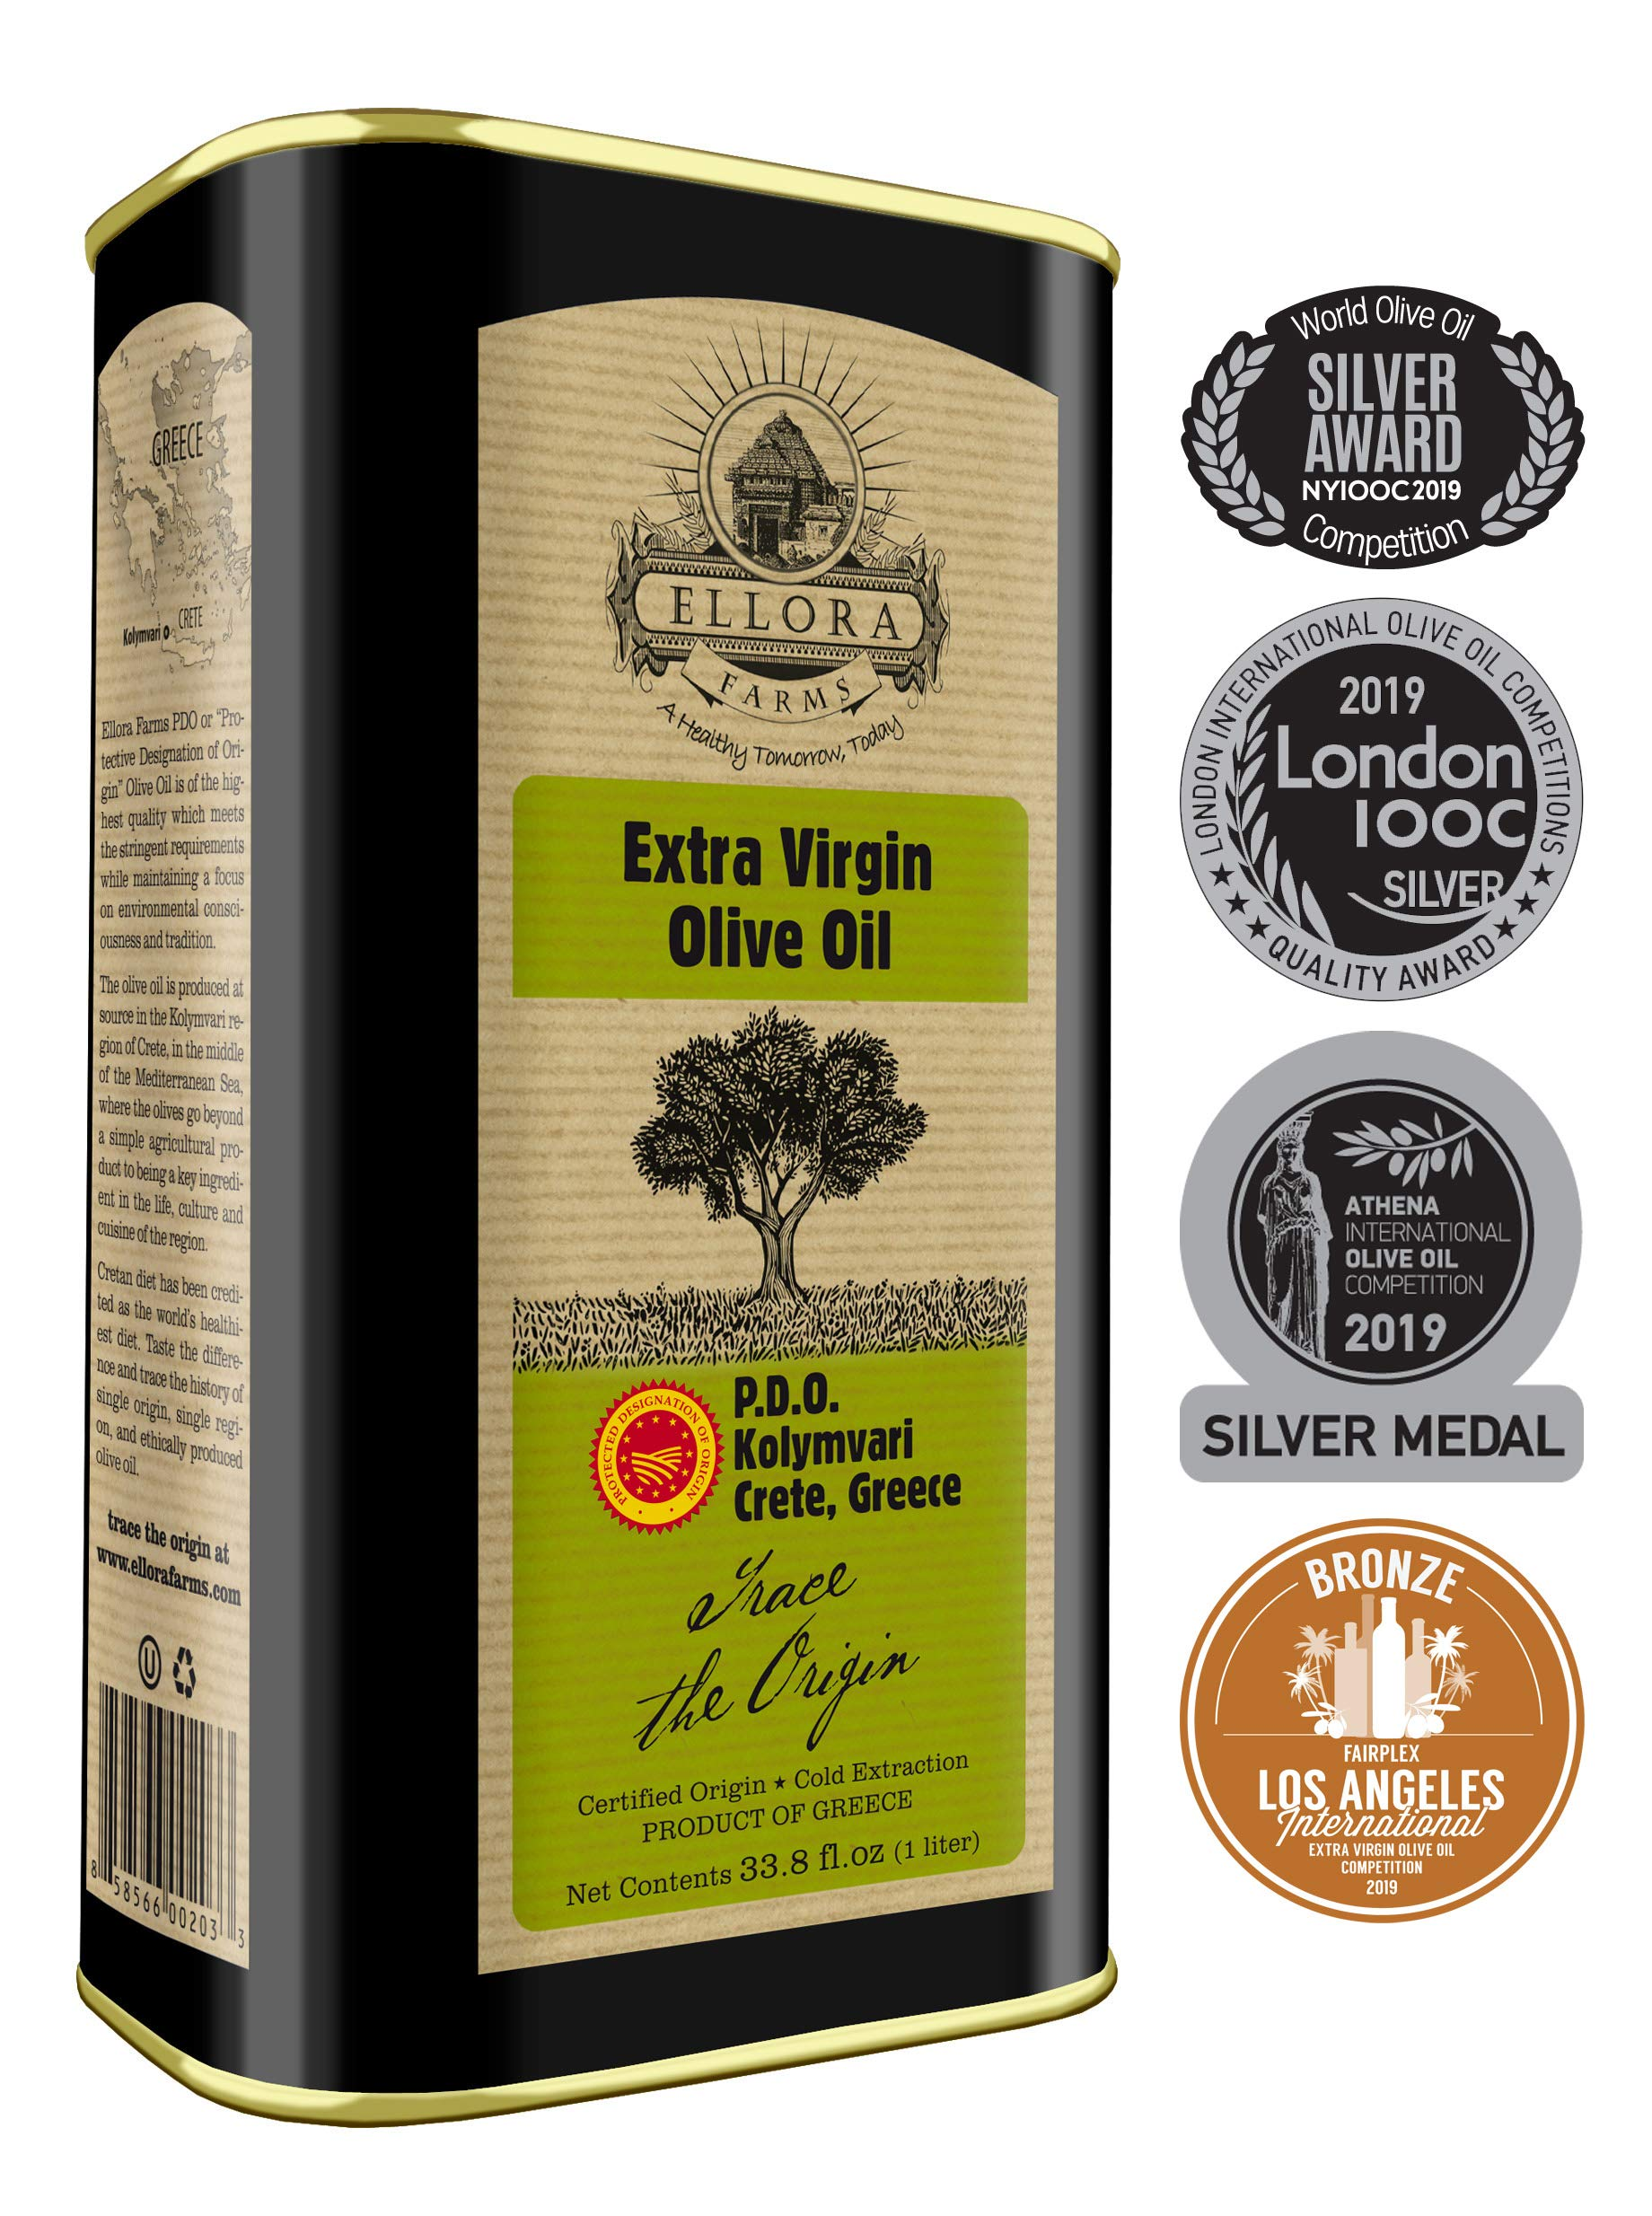 Ellora Farms | Certified PDO Extra Virgin Olive Oil | Single Variety Koroneiki Olives | Cold Press & Traceable Olive Oil | Born in Ancient Crete, Greece | Kosher | 1 Lt Tin, total 33.8 oz. by Ellora Farms